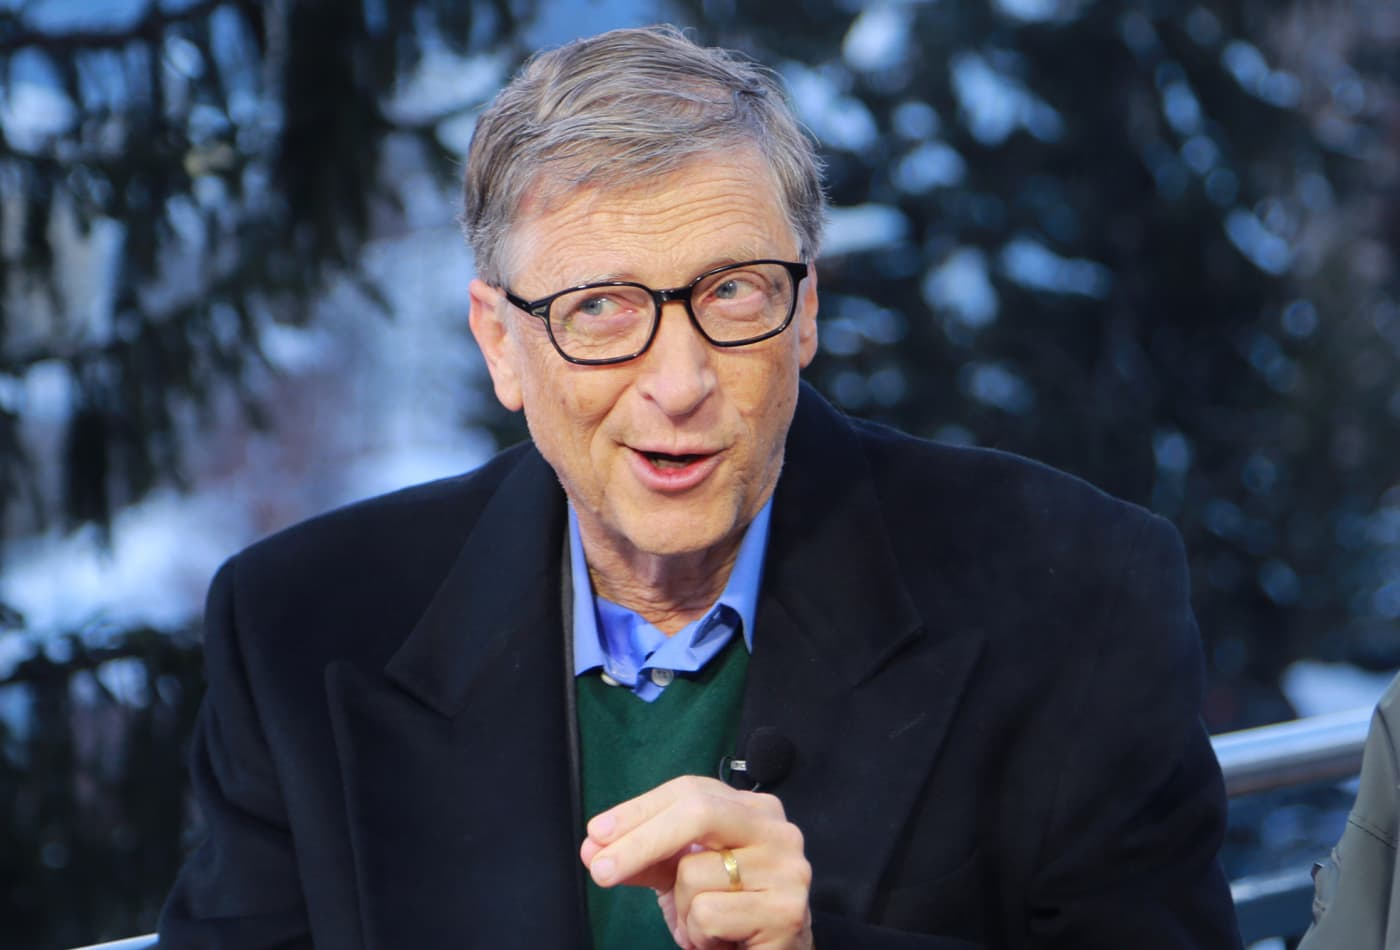 7 Money Mistakes Millionaires Like Warren Buffett And Bill Gates Never Ever Make That Average People Do All The Time